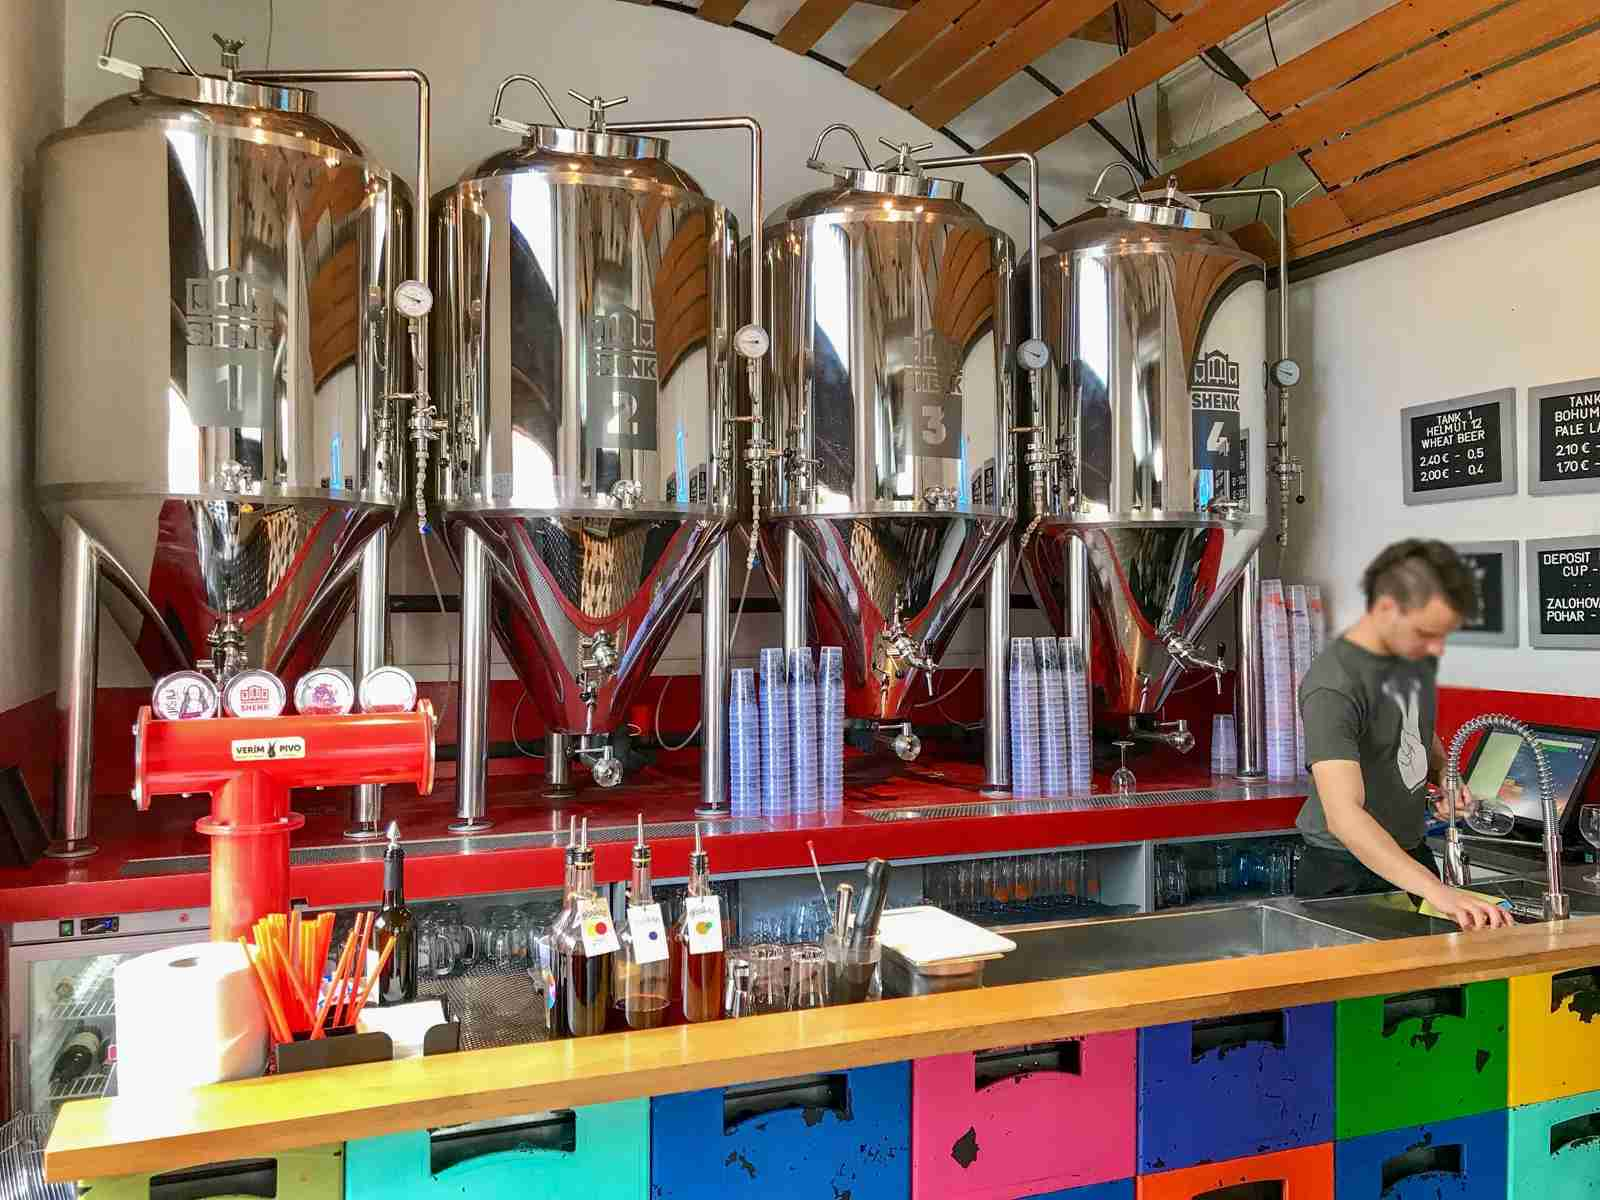 Výčap u Ernőho is a taproom for a local microbrewer called Shenk that